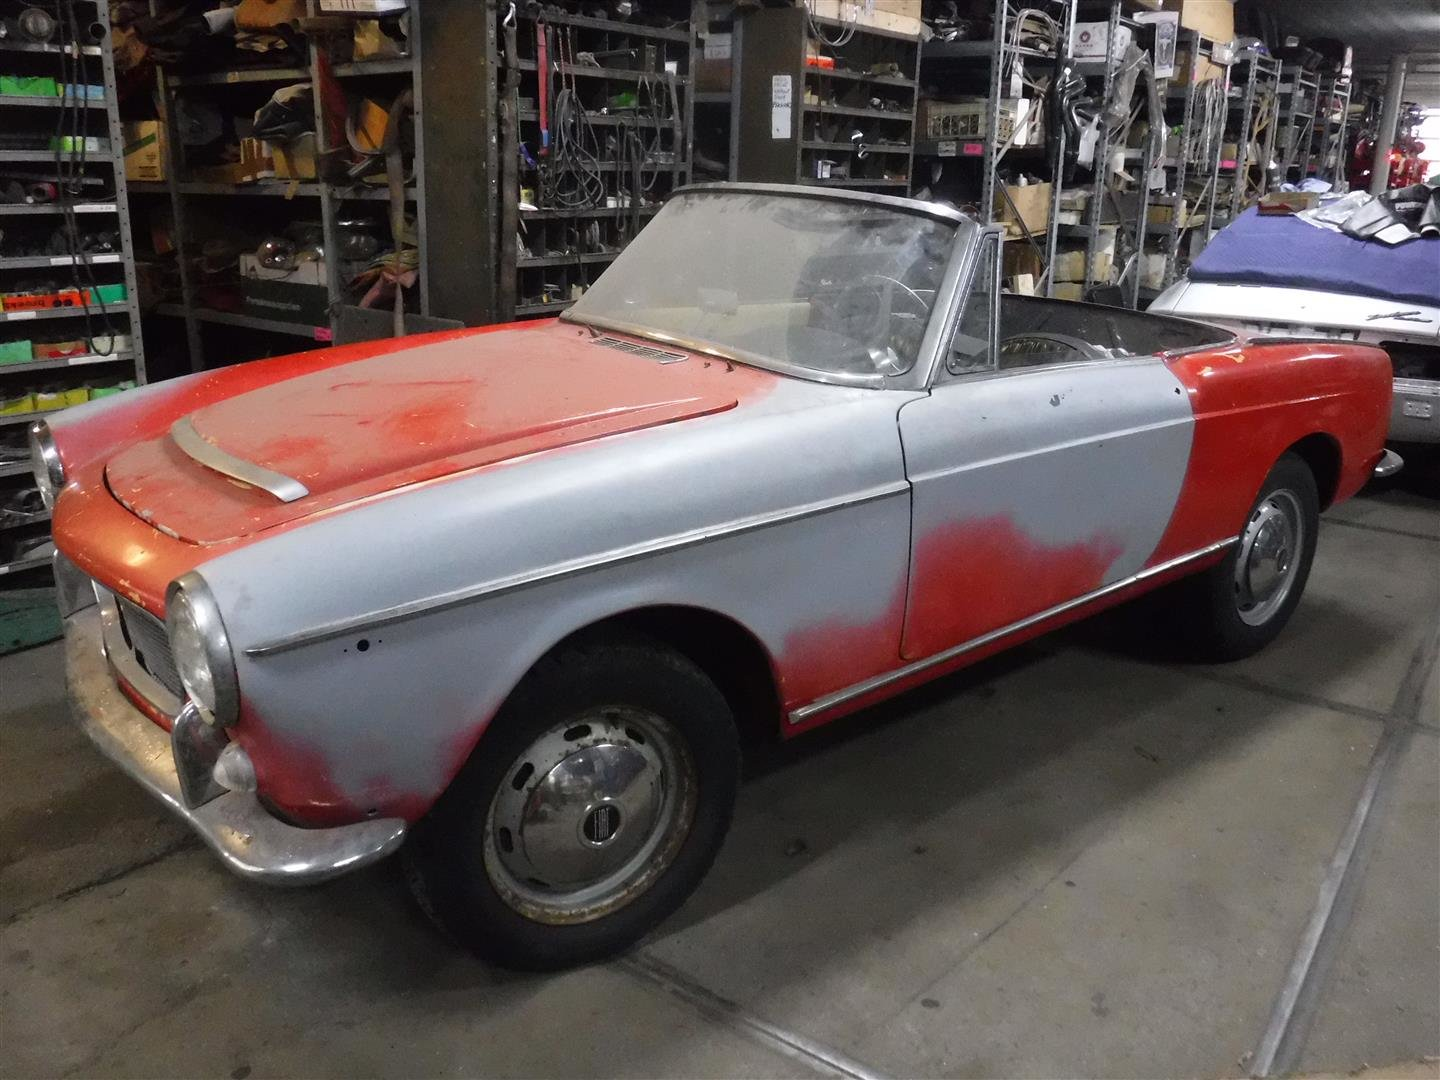 1962 Fiat Osca 1500 spider '62 For Sale (picture 1 of 6)